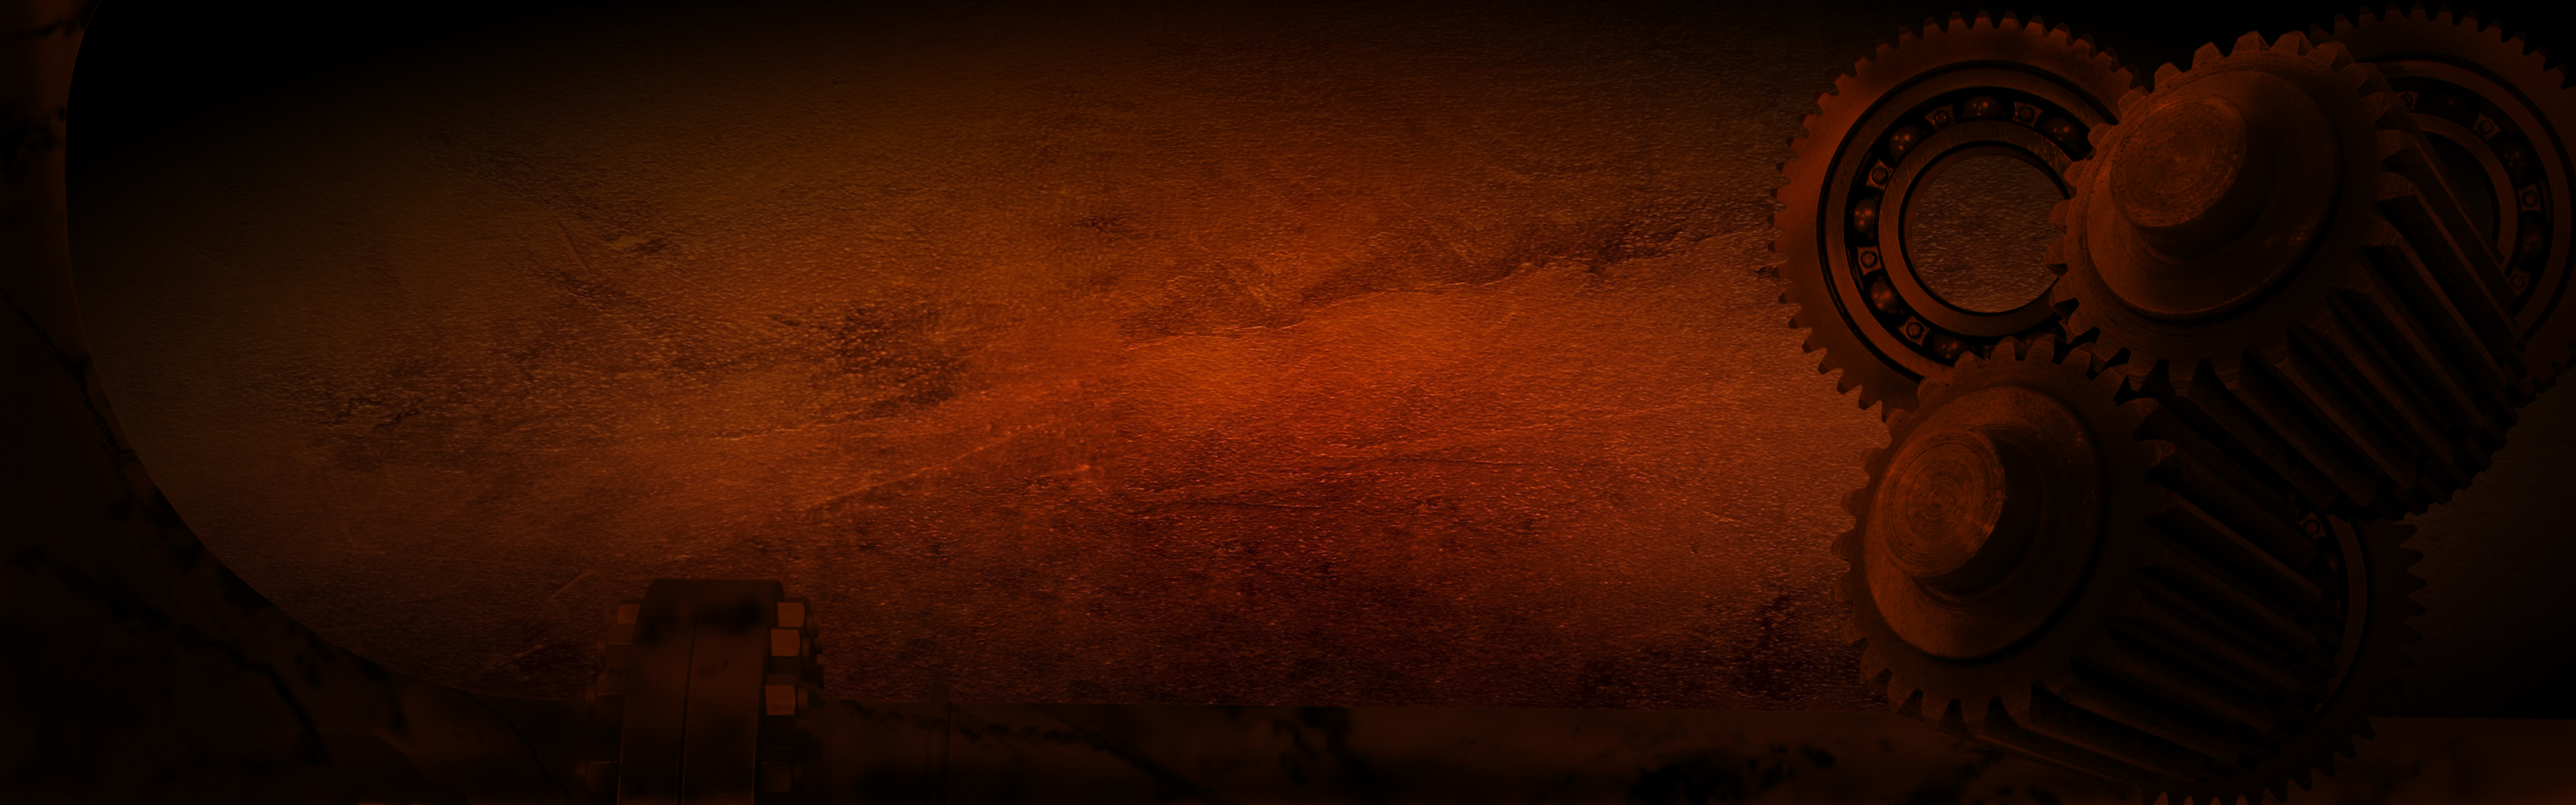 Dark brown wallpaper wallpapersafari for 3d brown wallpaper